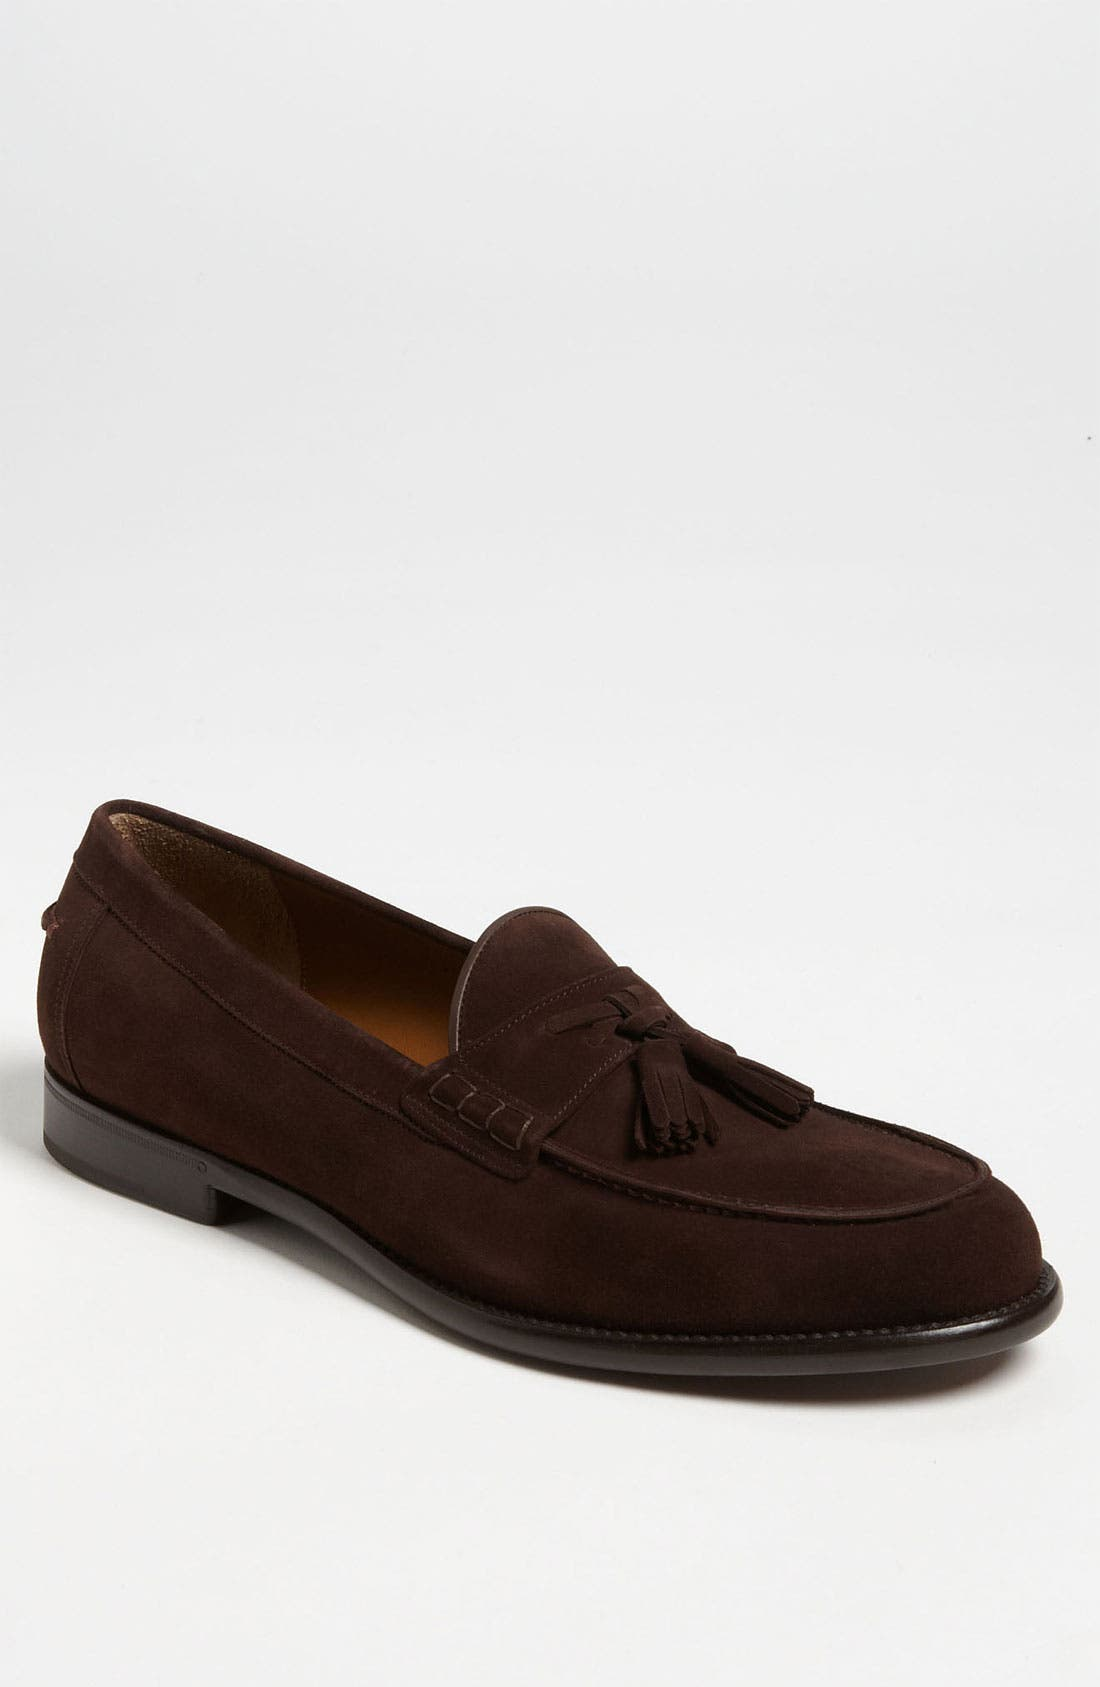 Alternate Image 1 Selected - Salvatore Ferragamo 'Treviso' Tassel Loafer